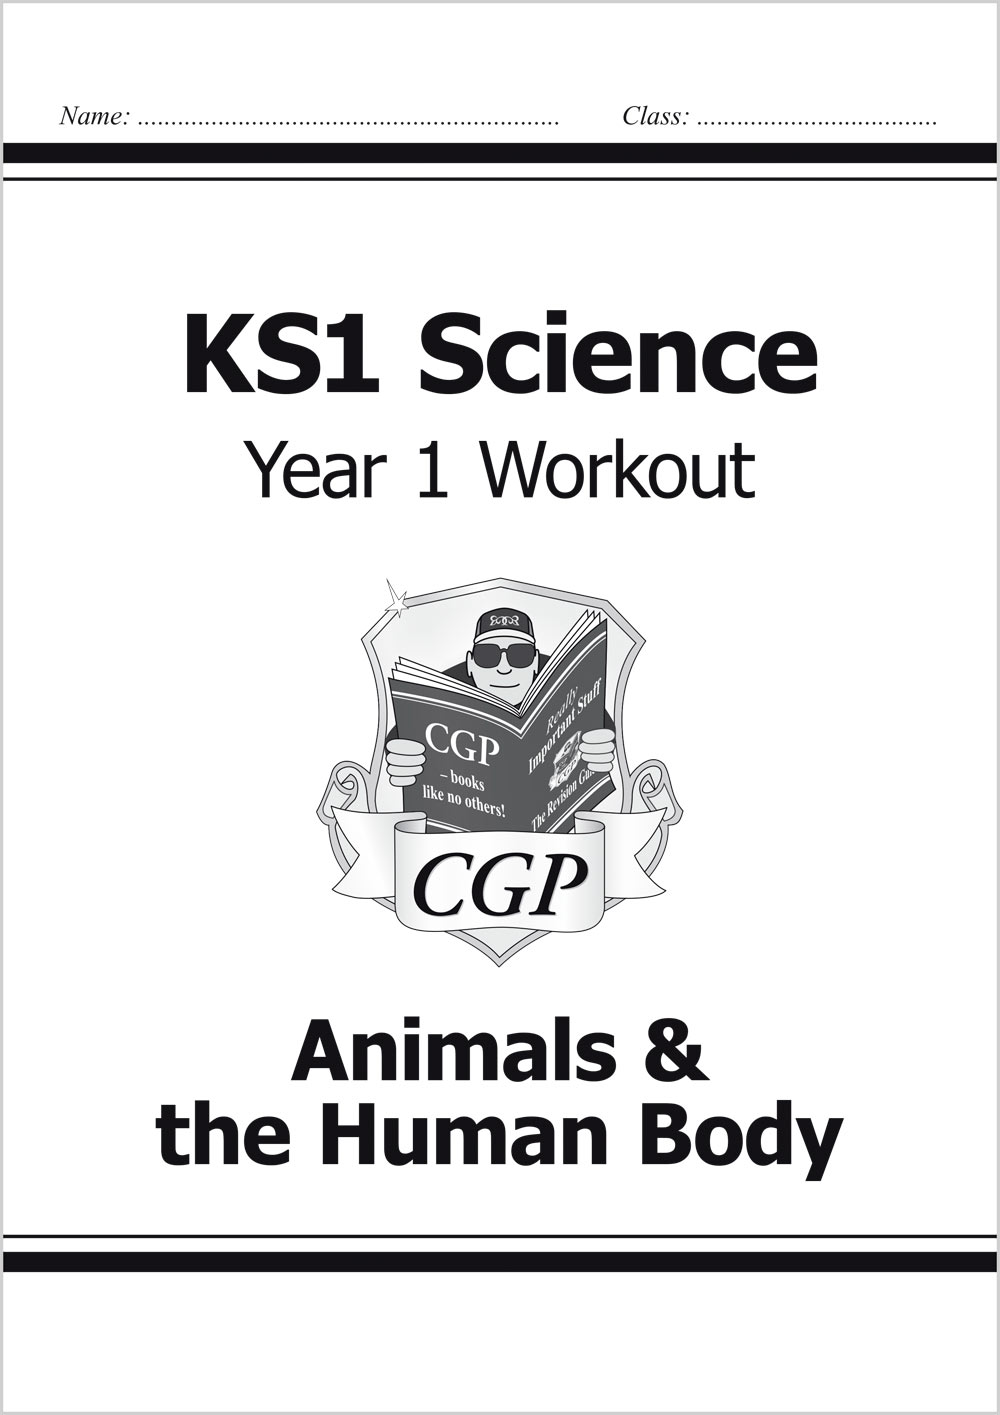 S1B11 - KS1 Science Year One Workout: Animals & the Human Body